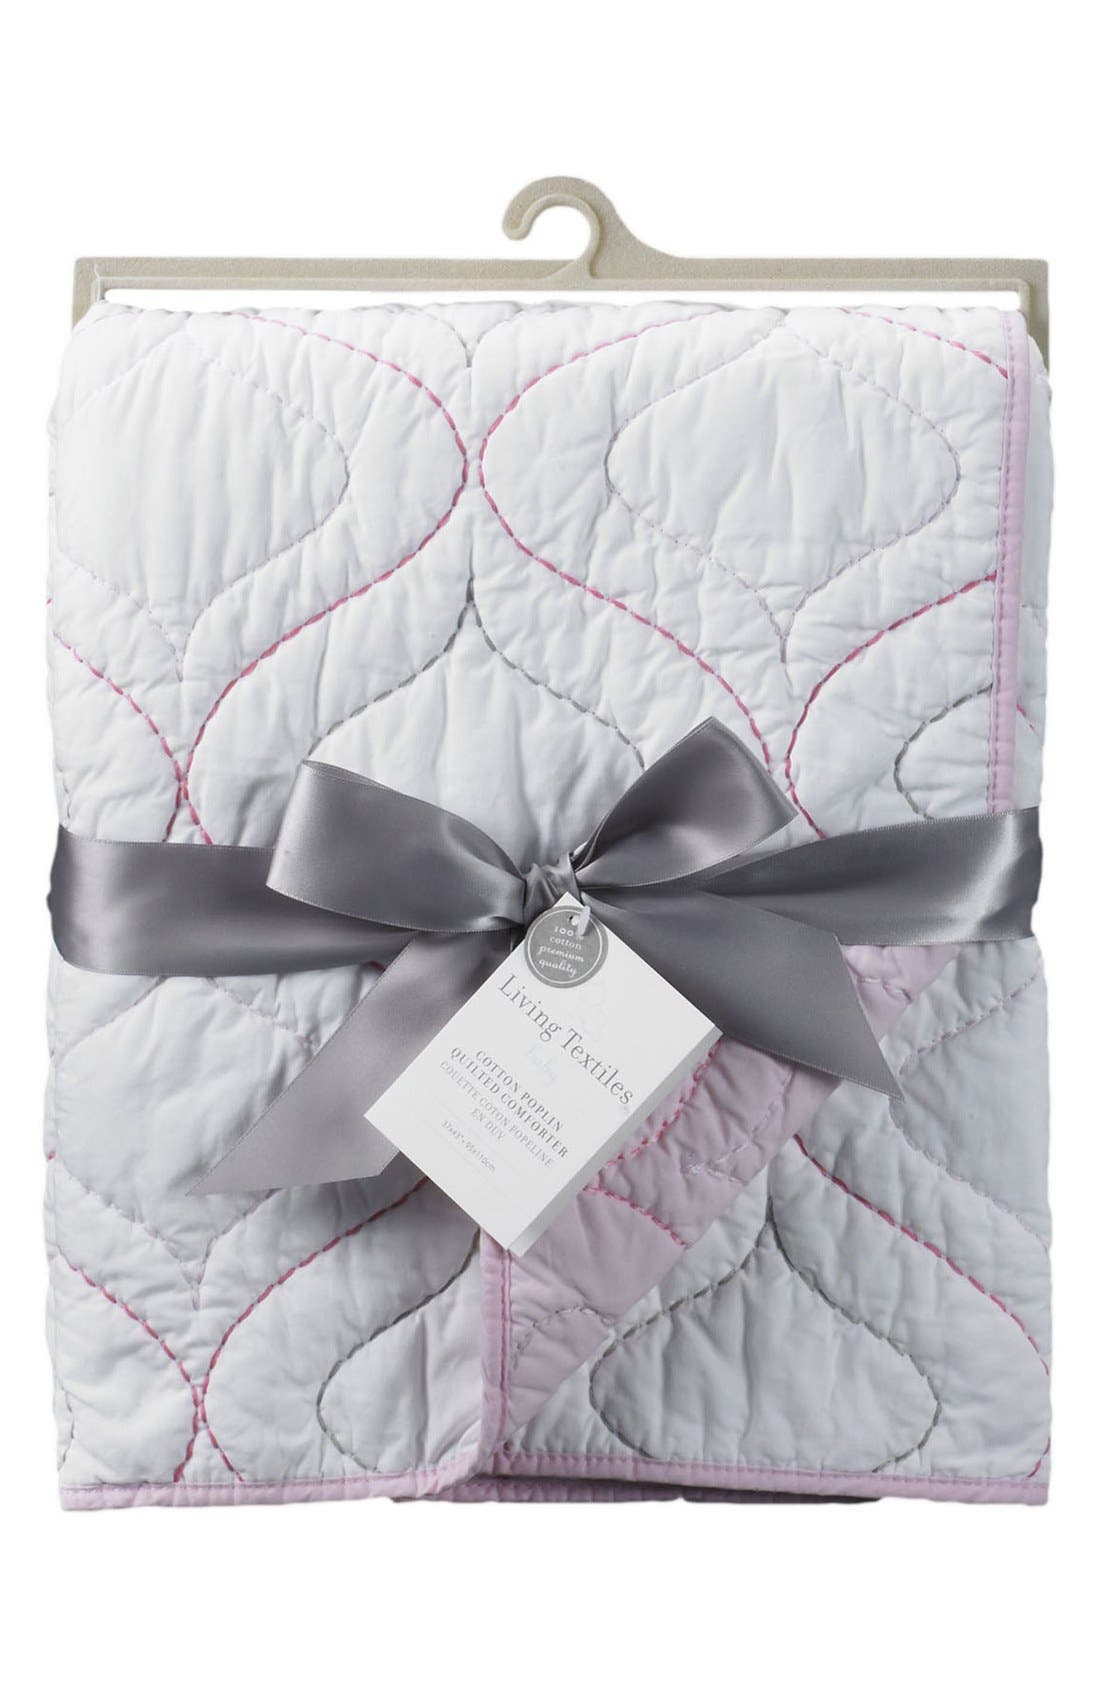 Poplin Quilted Comforter,                             Main thumbnail 1, color,                             100